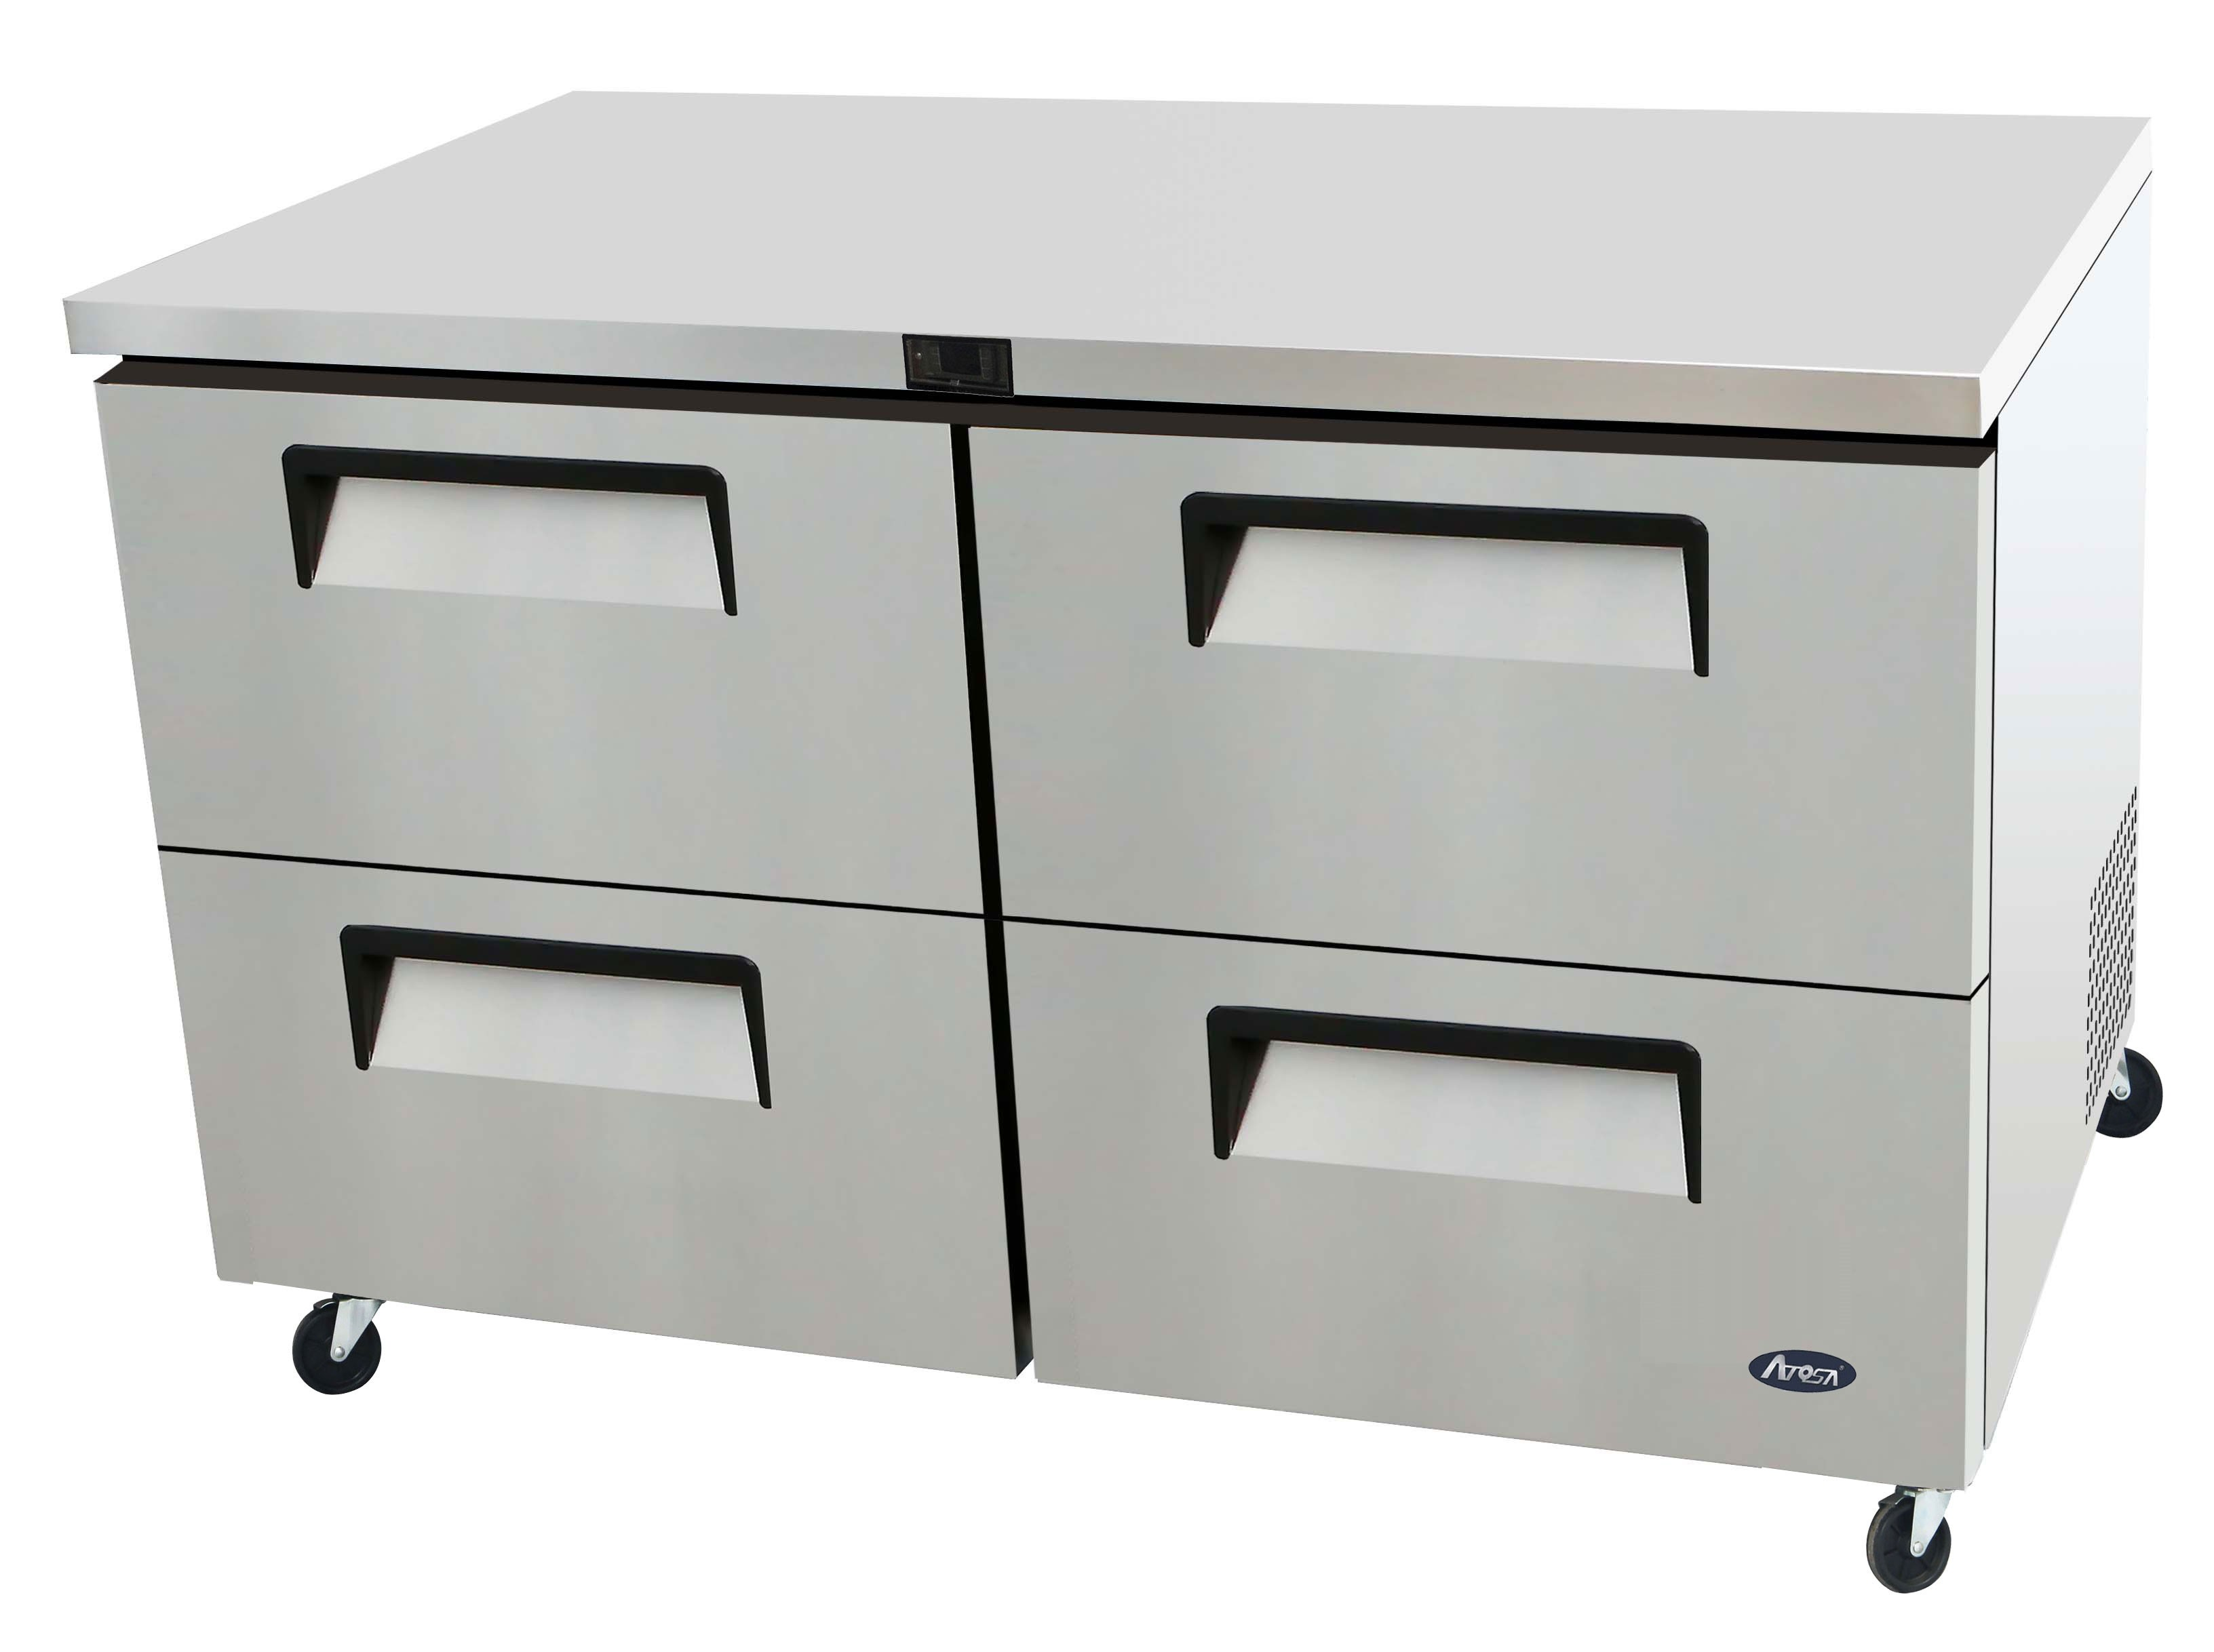 Atosa MGF8419 60'' Four-Drawer Undercounter Refrigerator